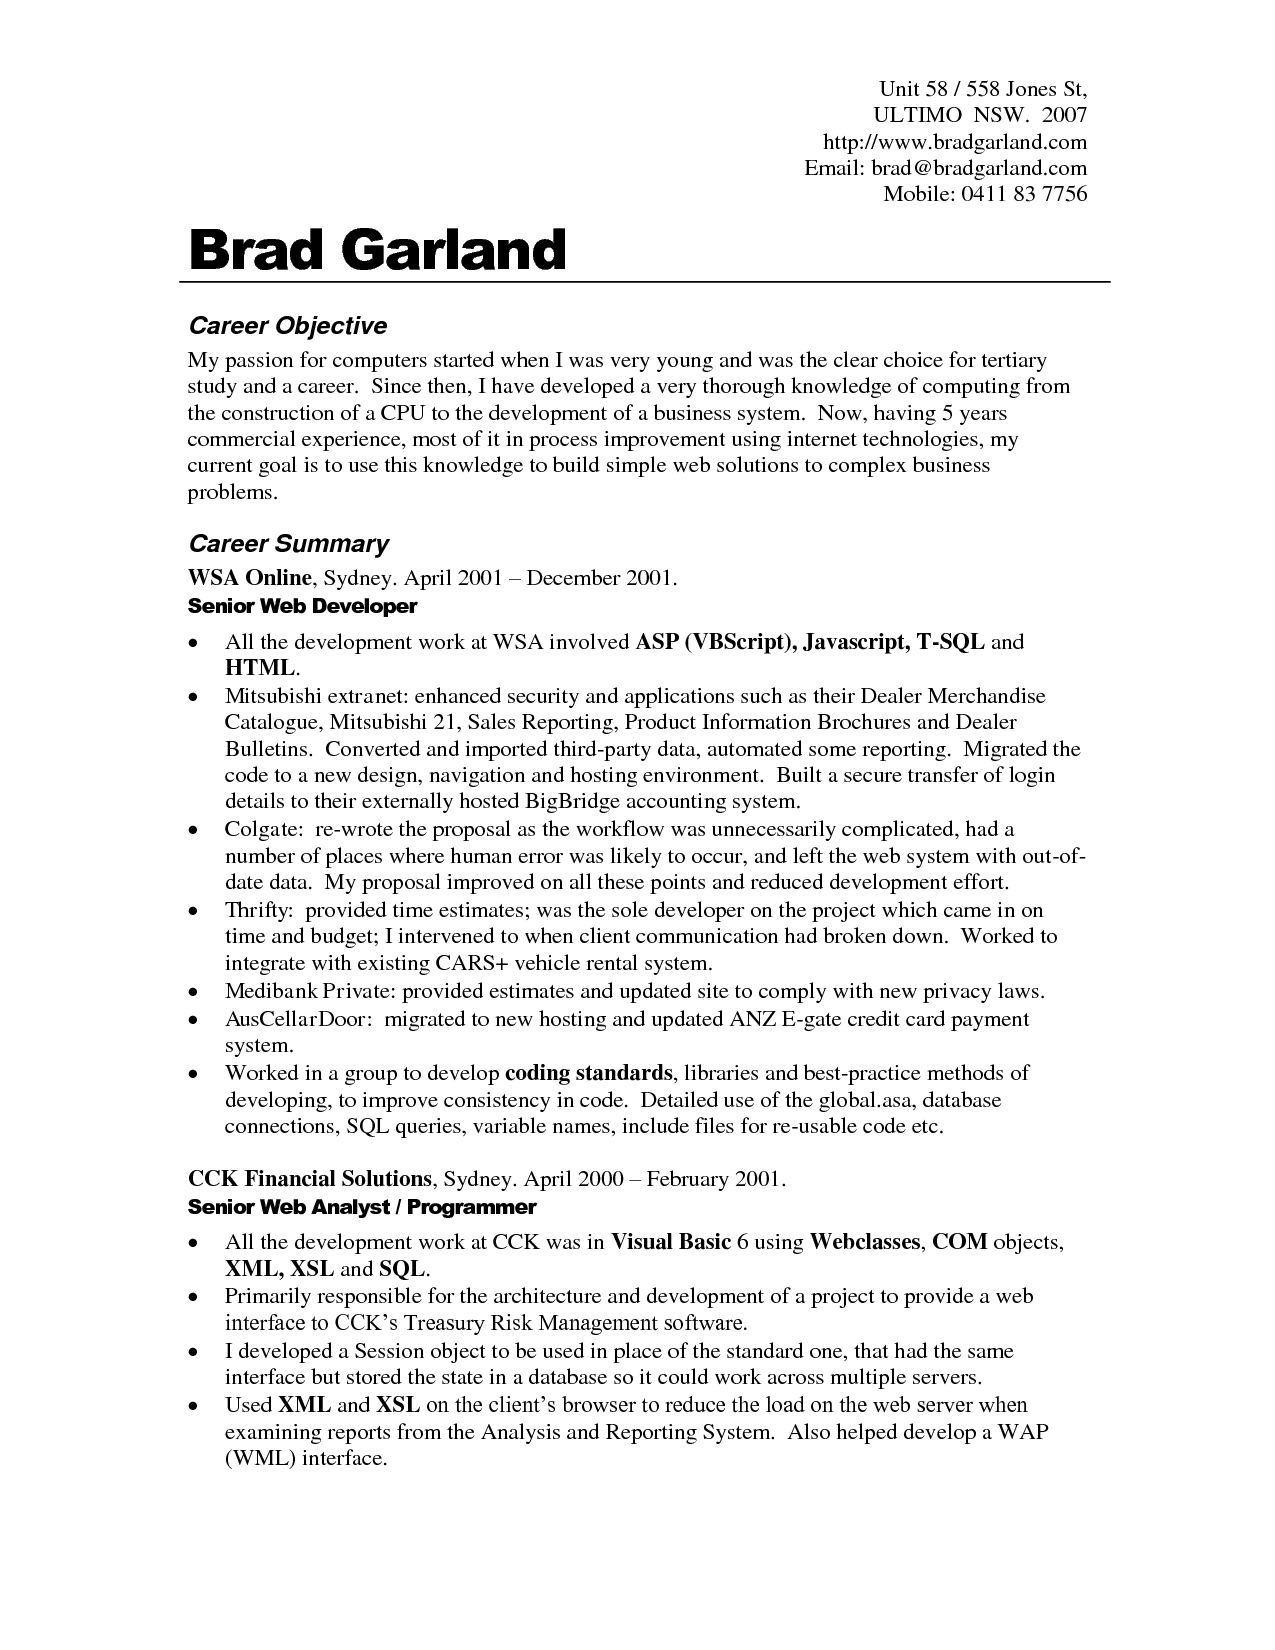 Job Objective Examples For Resumes Resume Examples Job Objective  Sample Resume Entry Level And .